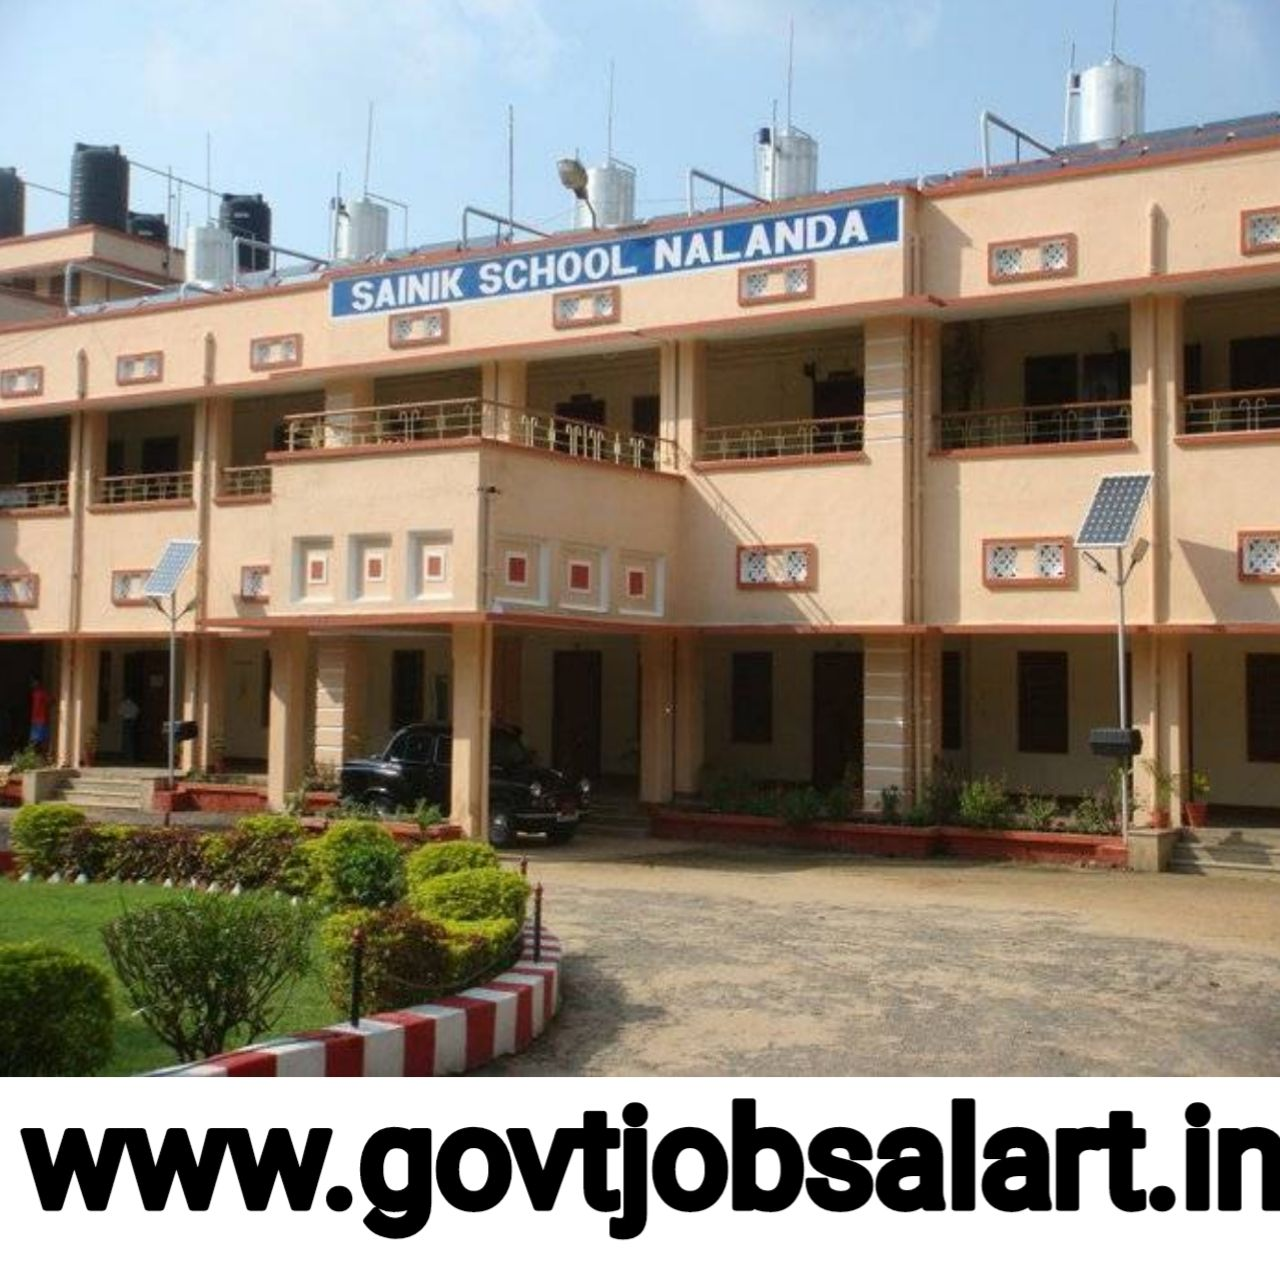 Govt jobs alart Sainik school nalanda recruitment 2020